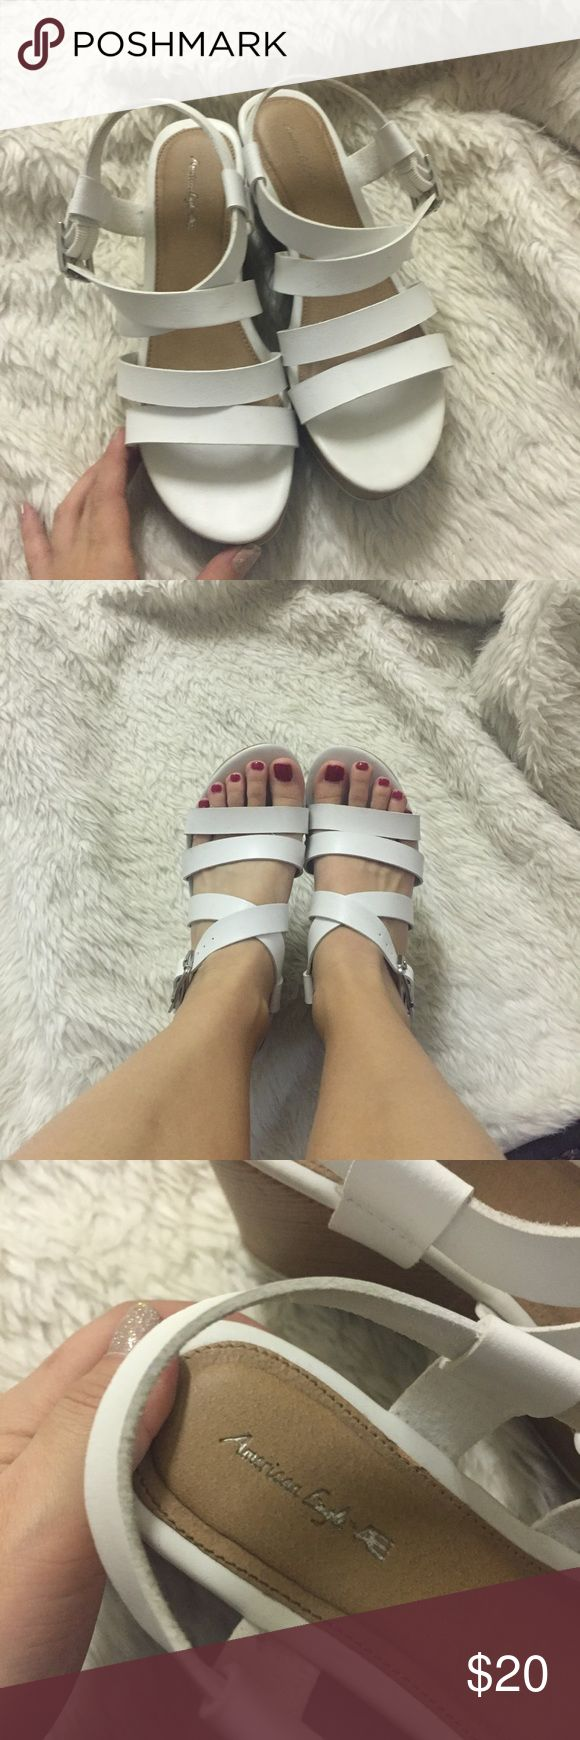 """AE white Wedge sandals Perfect little strapped wedged sandals. Can't feel the height but looks 3"""" taller. It's got some platform so it's easy to walk in. Size 4 in kids fits size 6 women. American Eagle Outfitters Shoes Sandals"""